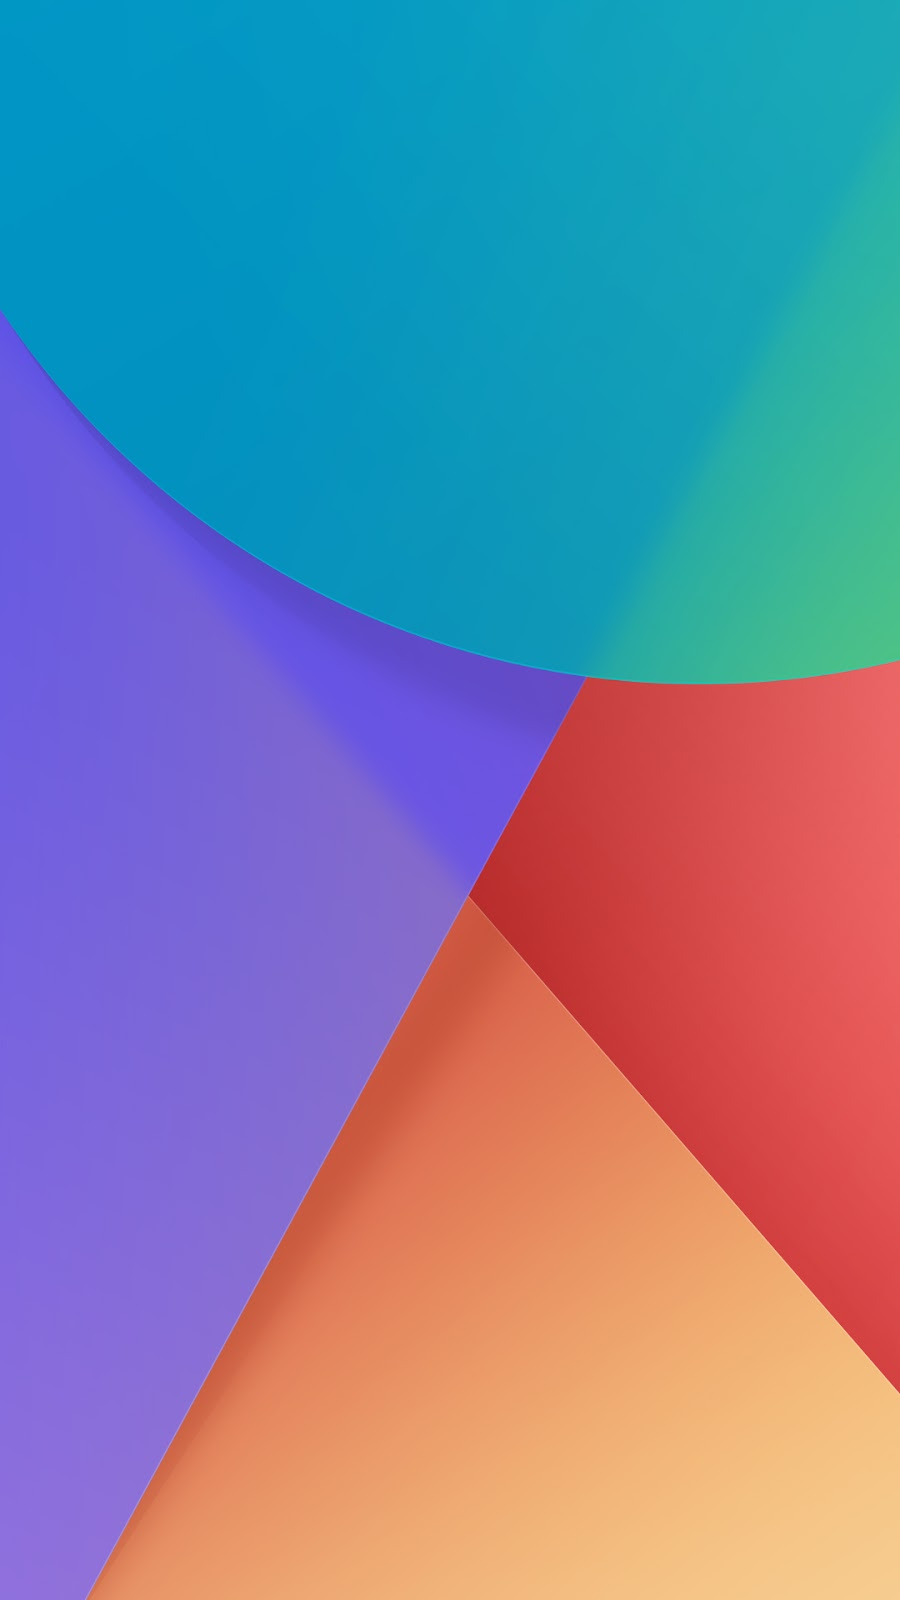 Android 50 壁紙 Wallpaper For You あなたのための壁紙最高品質